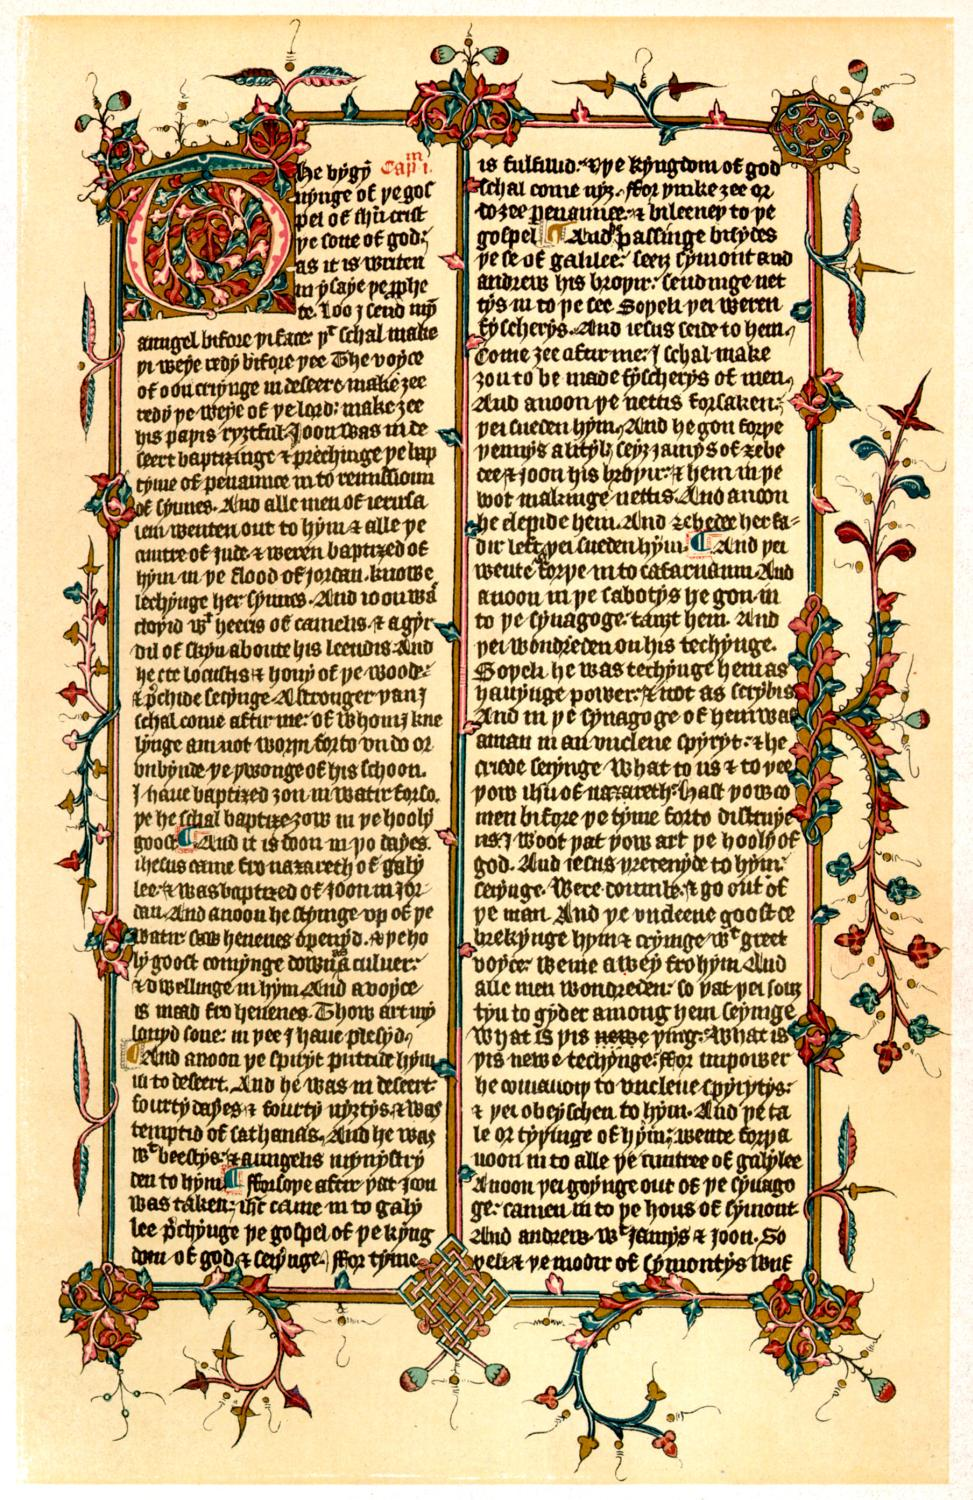 a page from the Book of Elishamma